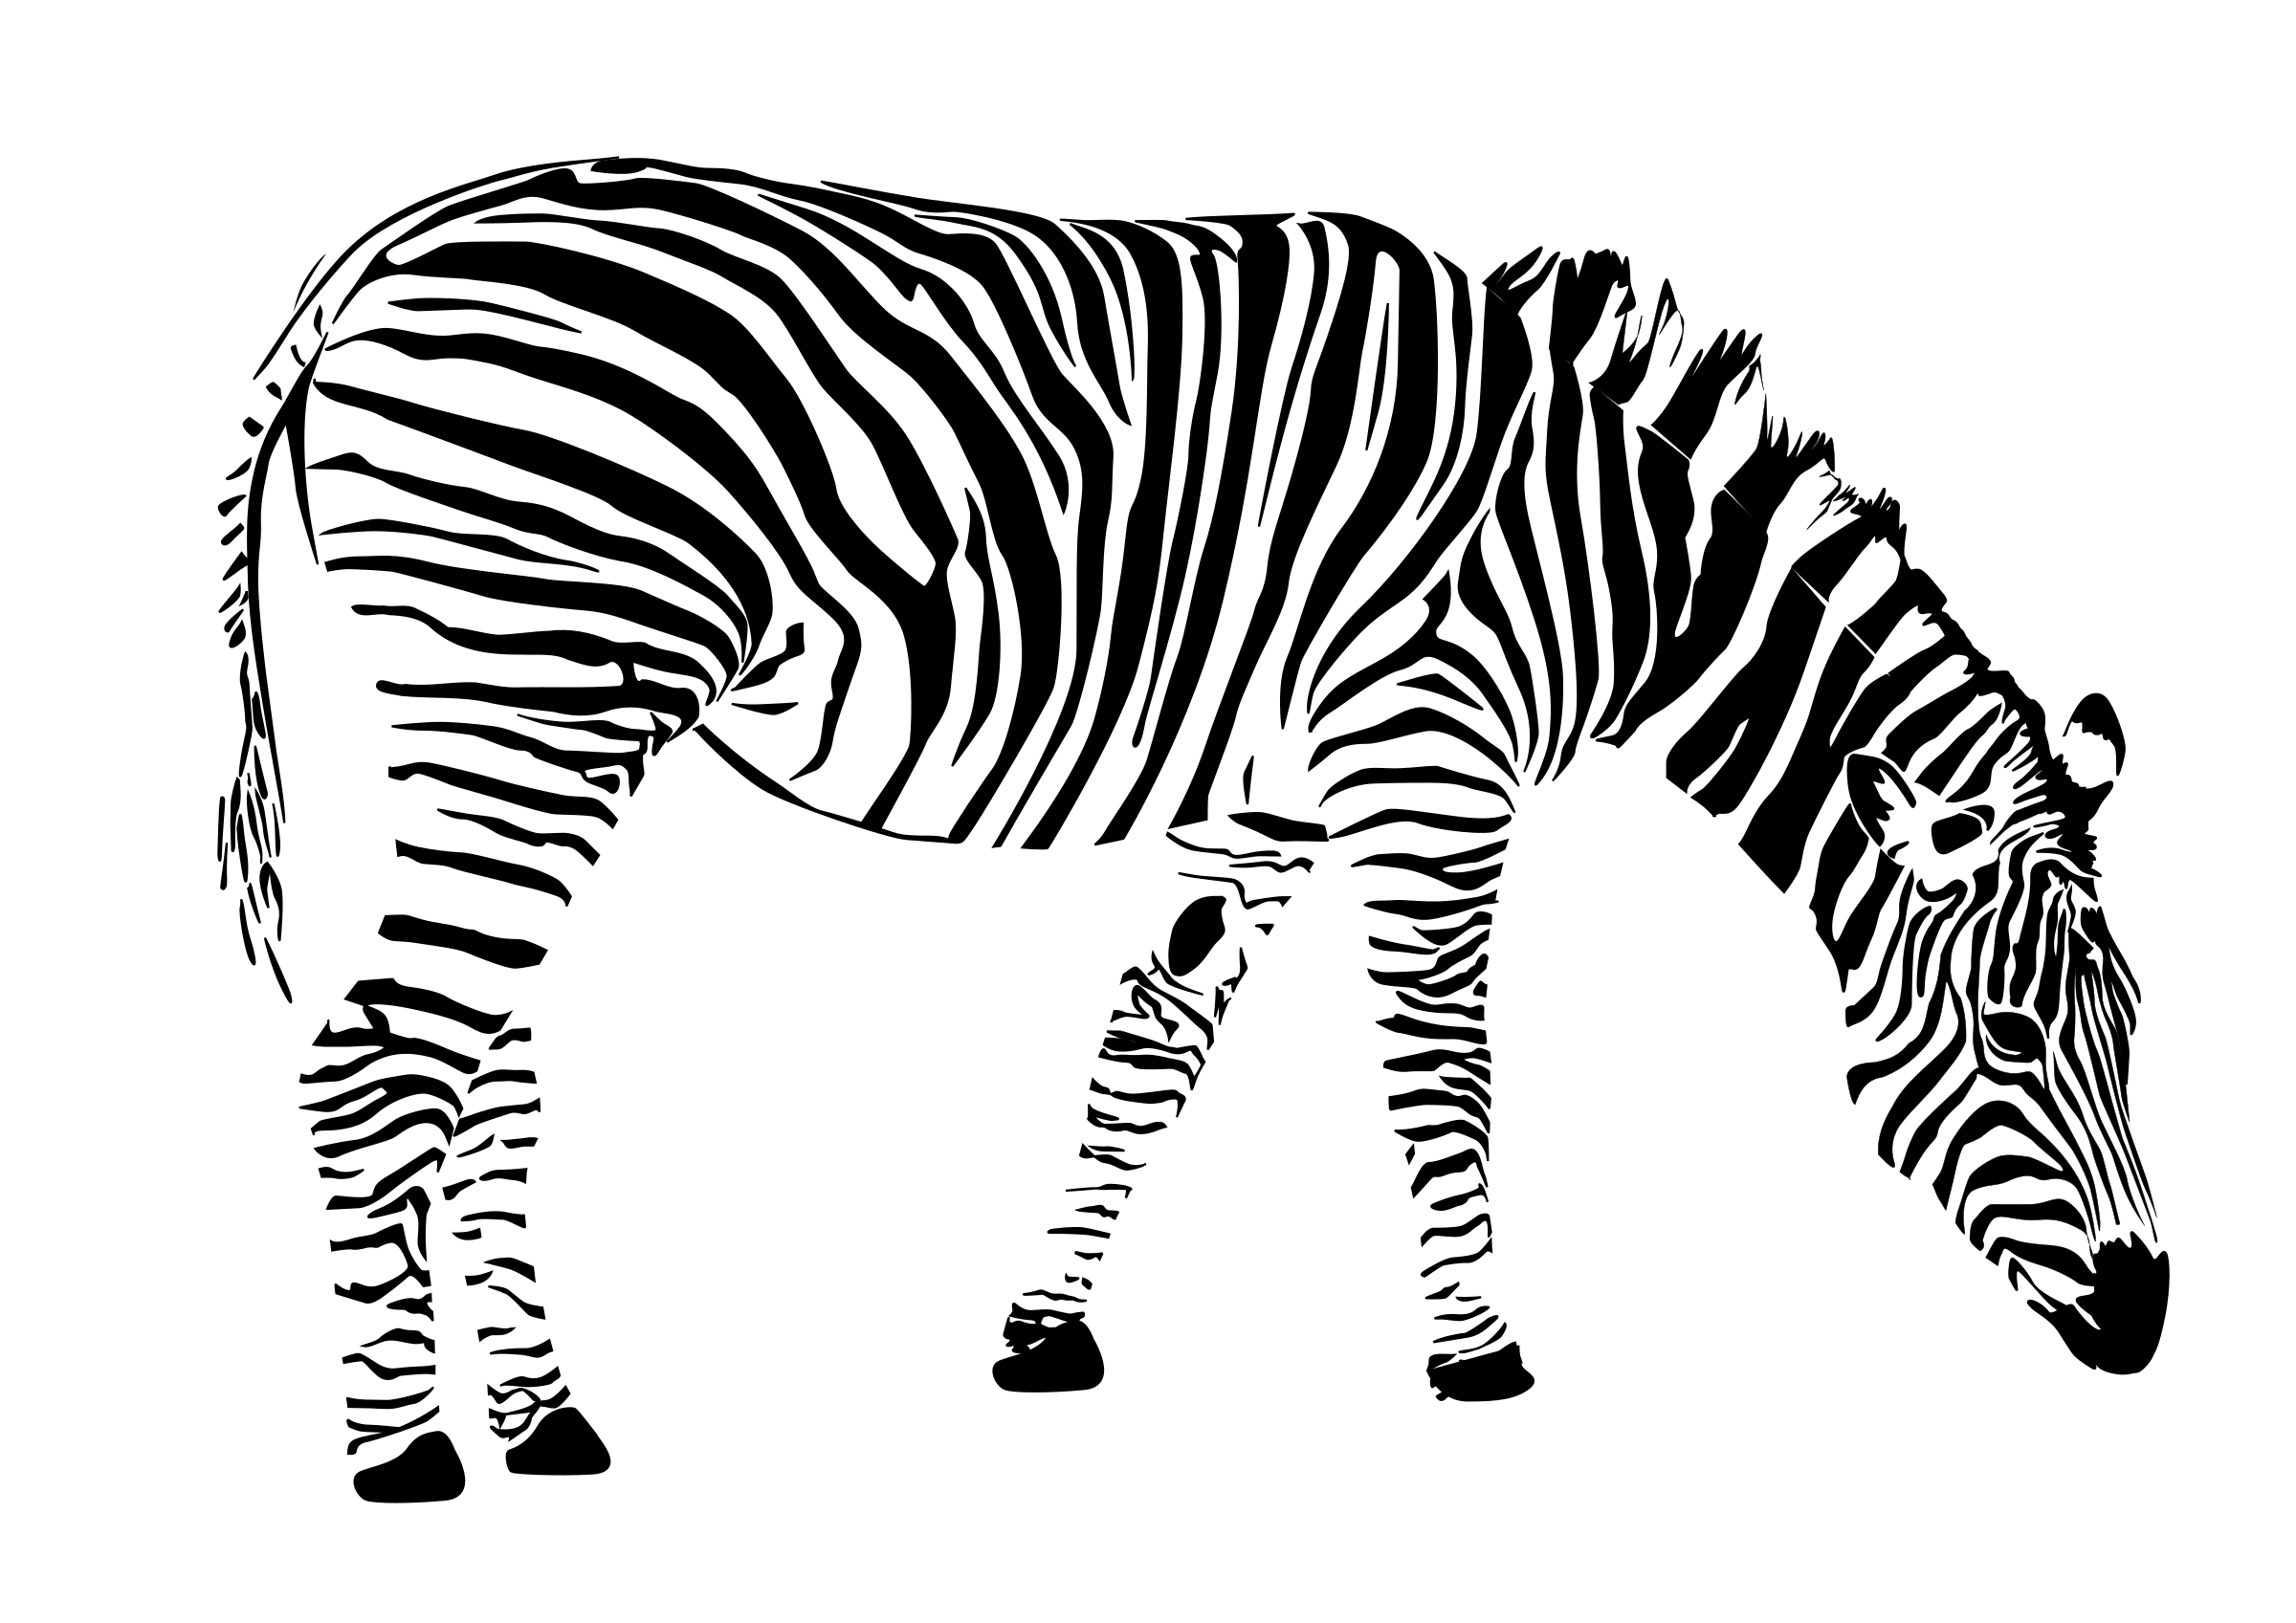 coloring clipart black and white zebra animals clipart zebra3282outline classroom clipart clipart coloring black and white zebra